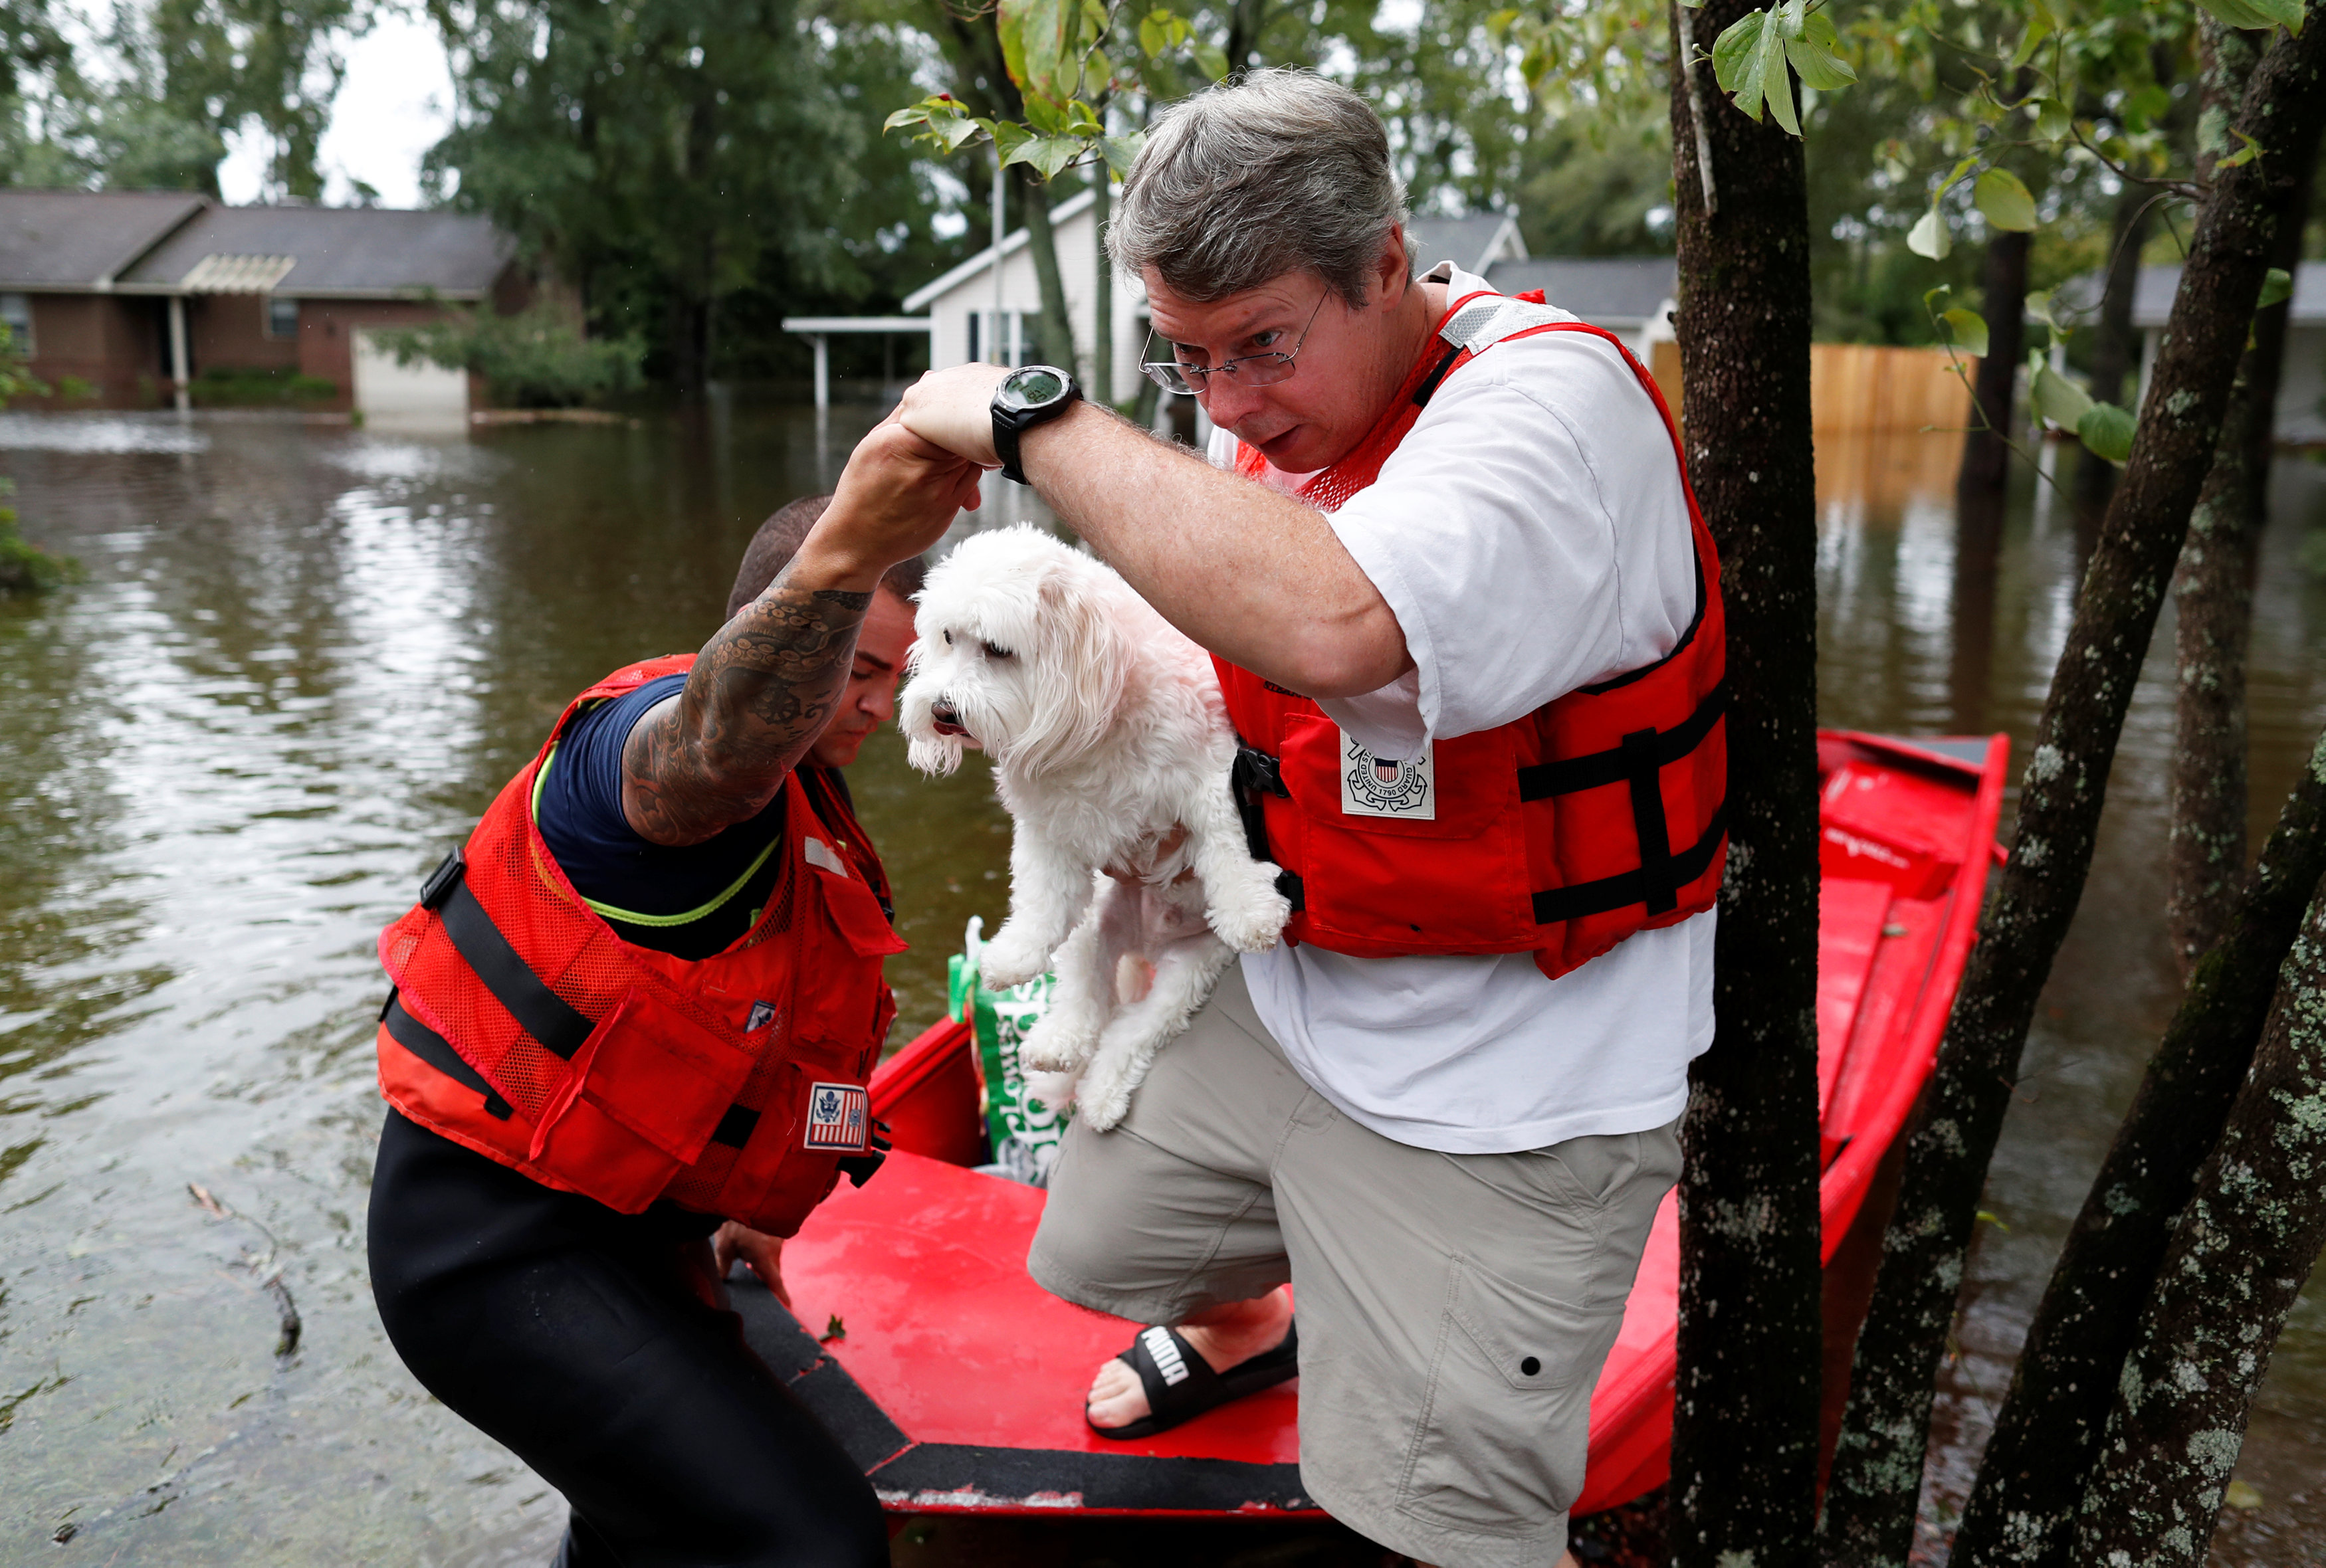 Roger Hedgpeth, carrying his dog Bodie, gets help getting to higher ground via the United States Coast Guard during Tropical Storm Florence in Lumberton